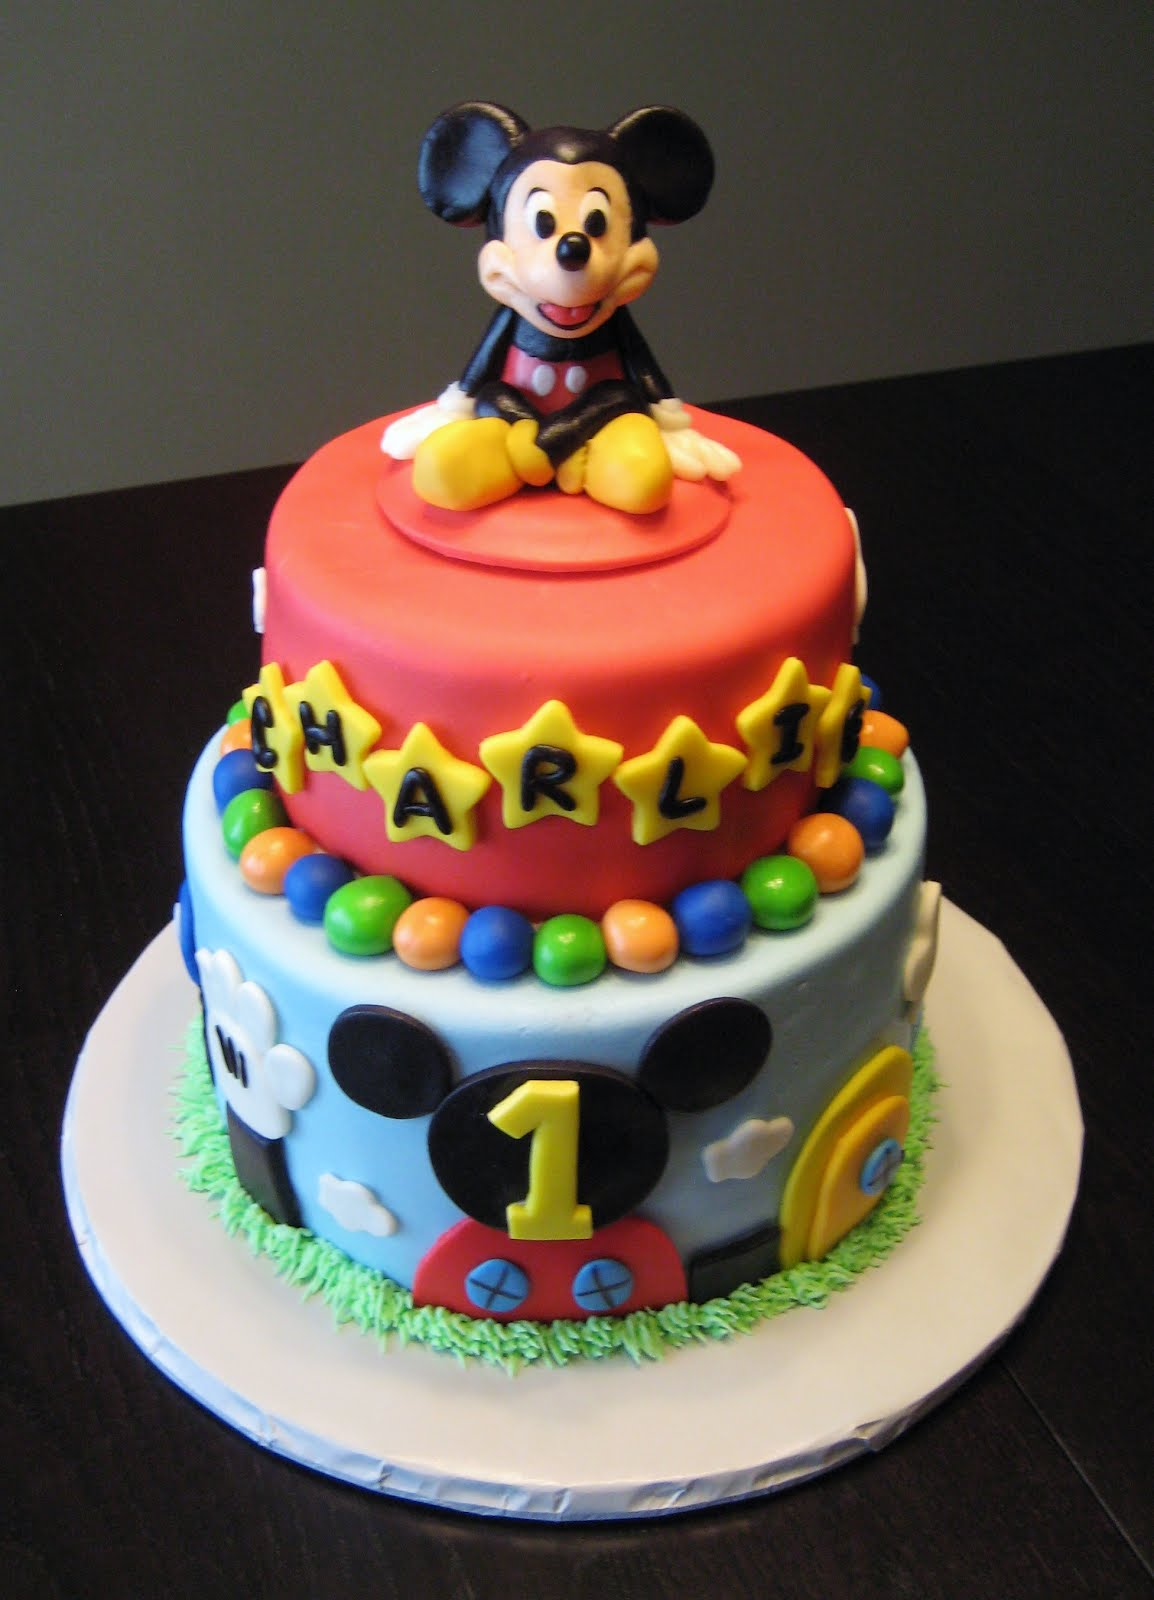 Custom Birthday Cakes Waterbury Ct